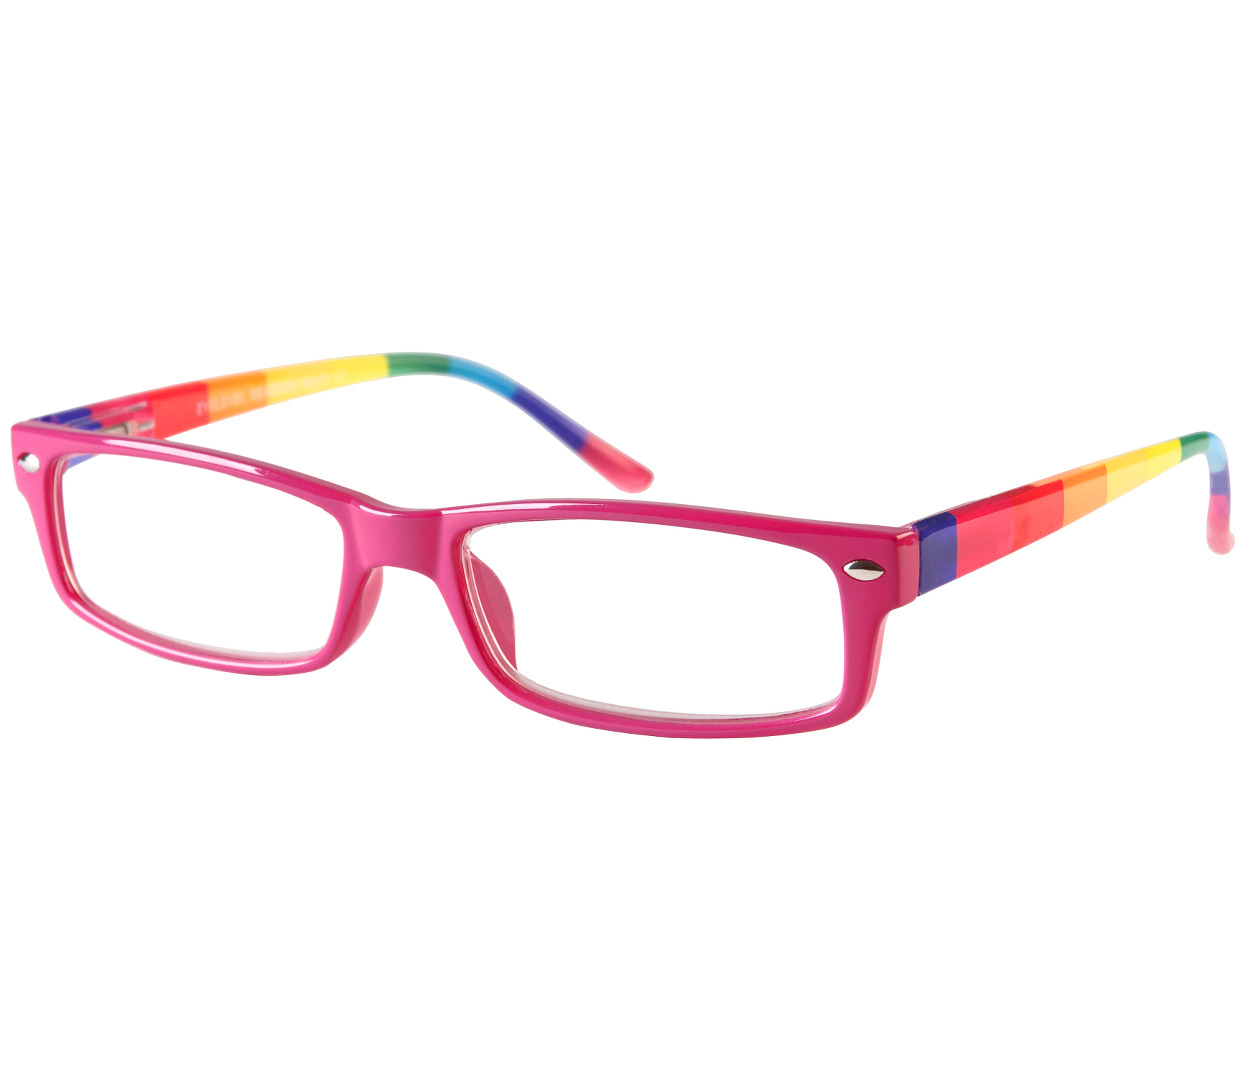 Main Image (Angle) - Prism (Multi-coloured) Fashion Reading Glasses